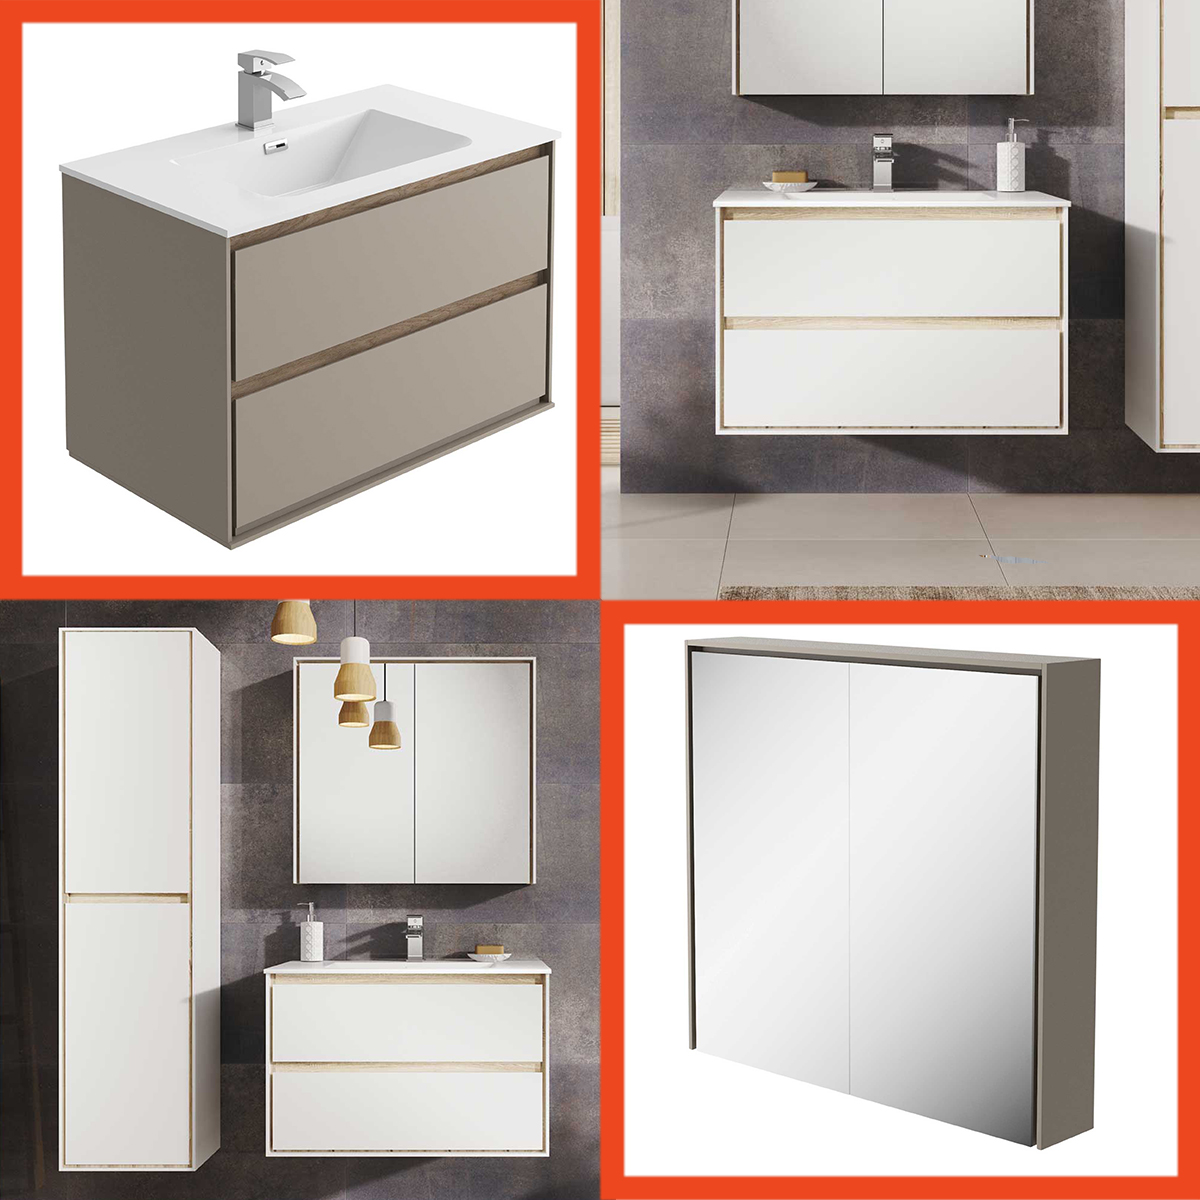 Luxury Bathroom Vanity Units Designer Bathroom Vanity Unit Wall Hung Resin Basin White